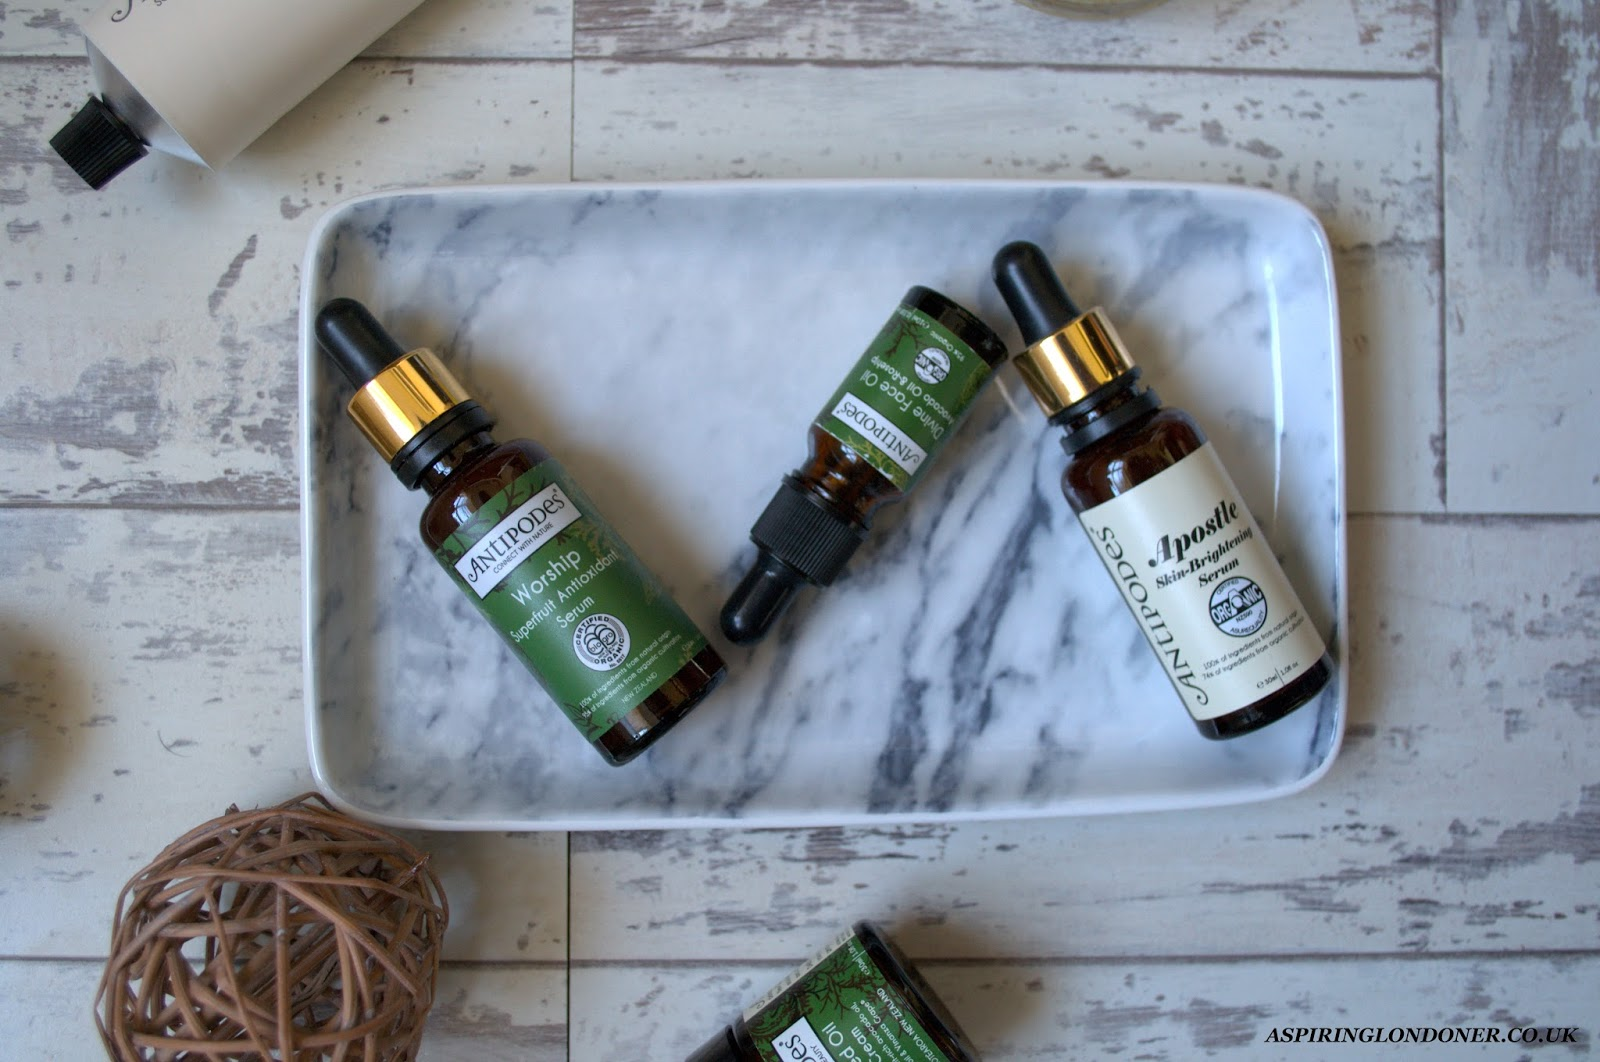 Antipodes Apostle Serum & Avocado Rosehip Oil Review - Aspiring Londoner